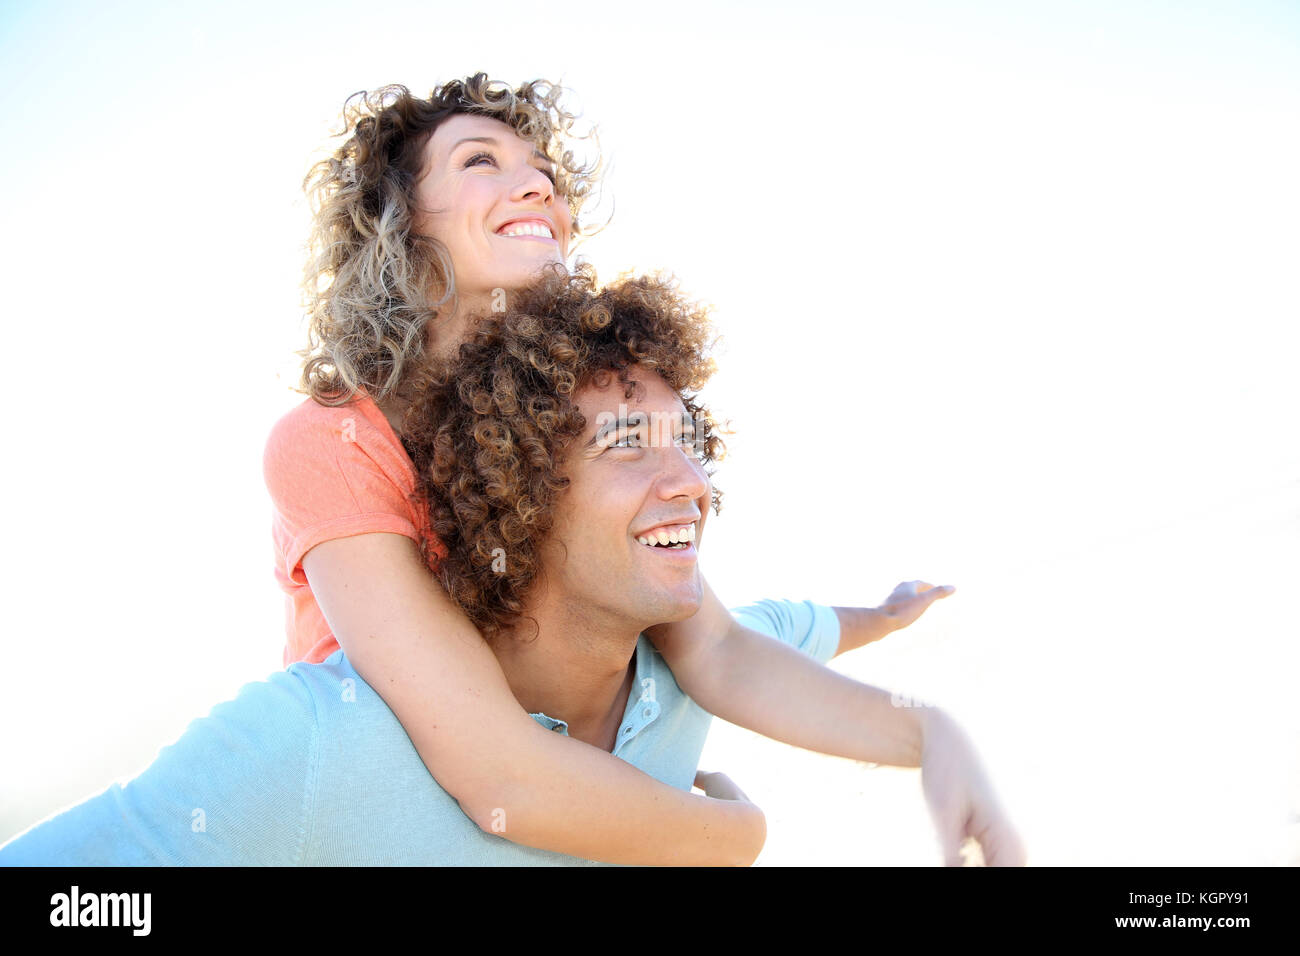 Man giving piggyback ride to girlfriend on the beach - Stock Image